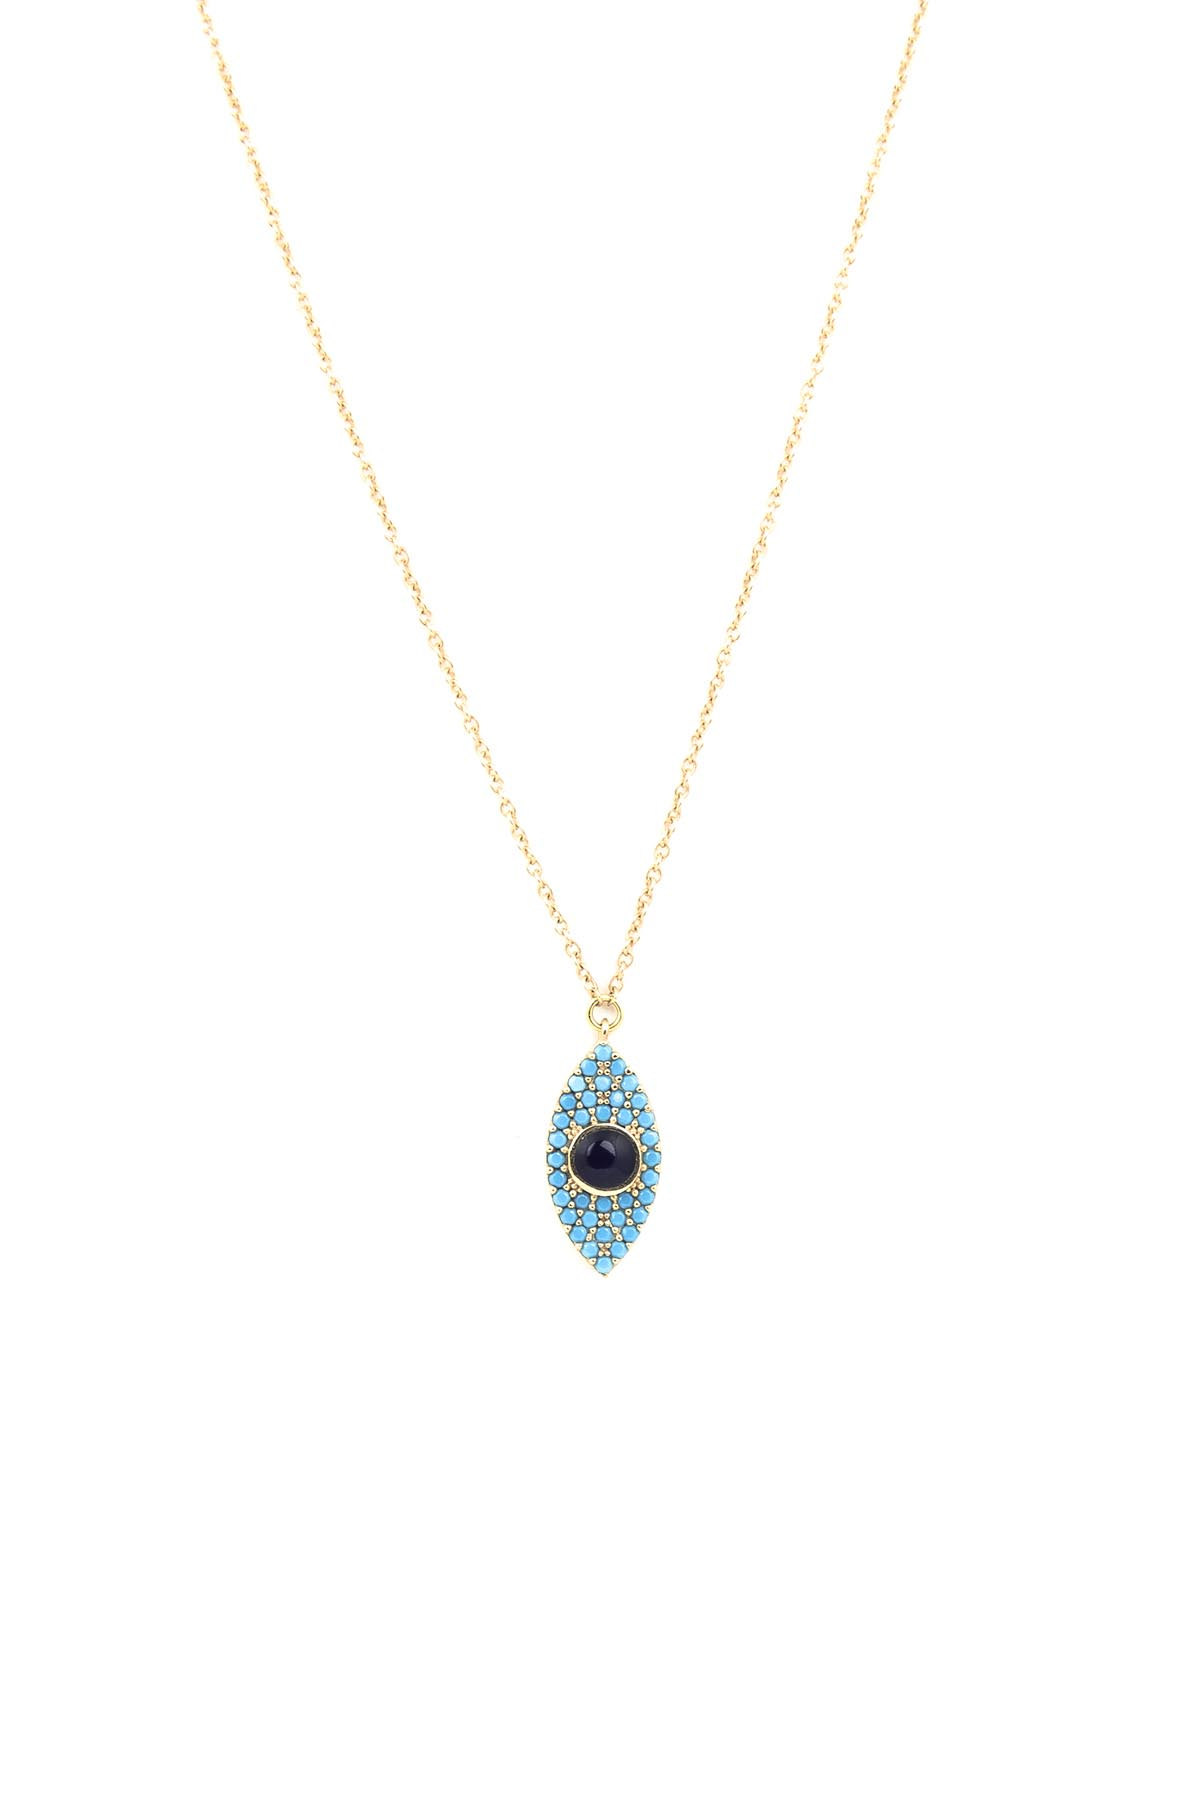 Blue Eyes – Evil Eye Necklace – Blue Eye Pendant Necklace | App Pertaining To Best And Newest Baby Blue Enamel Blue Heart Petite Locket Charm Necklaces (Gallery 19 of 25)